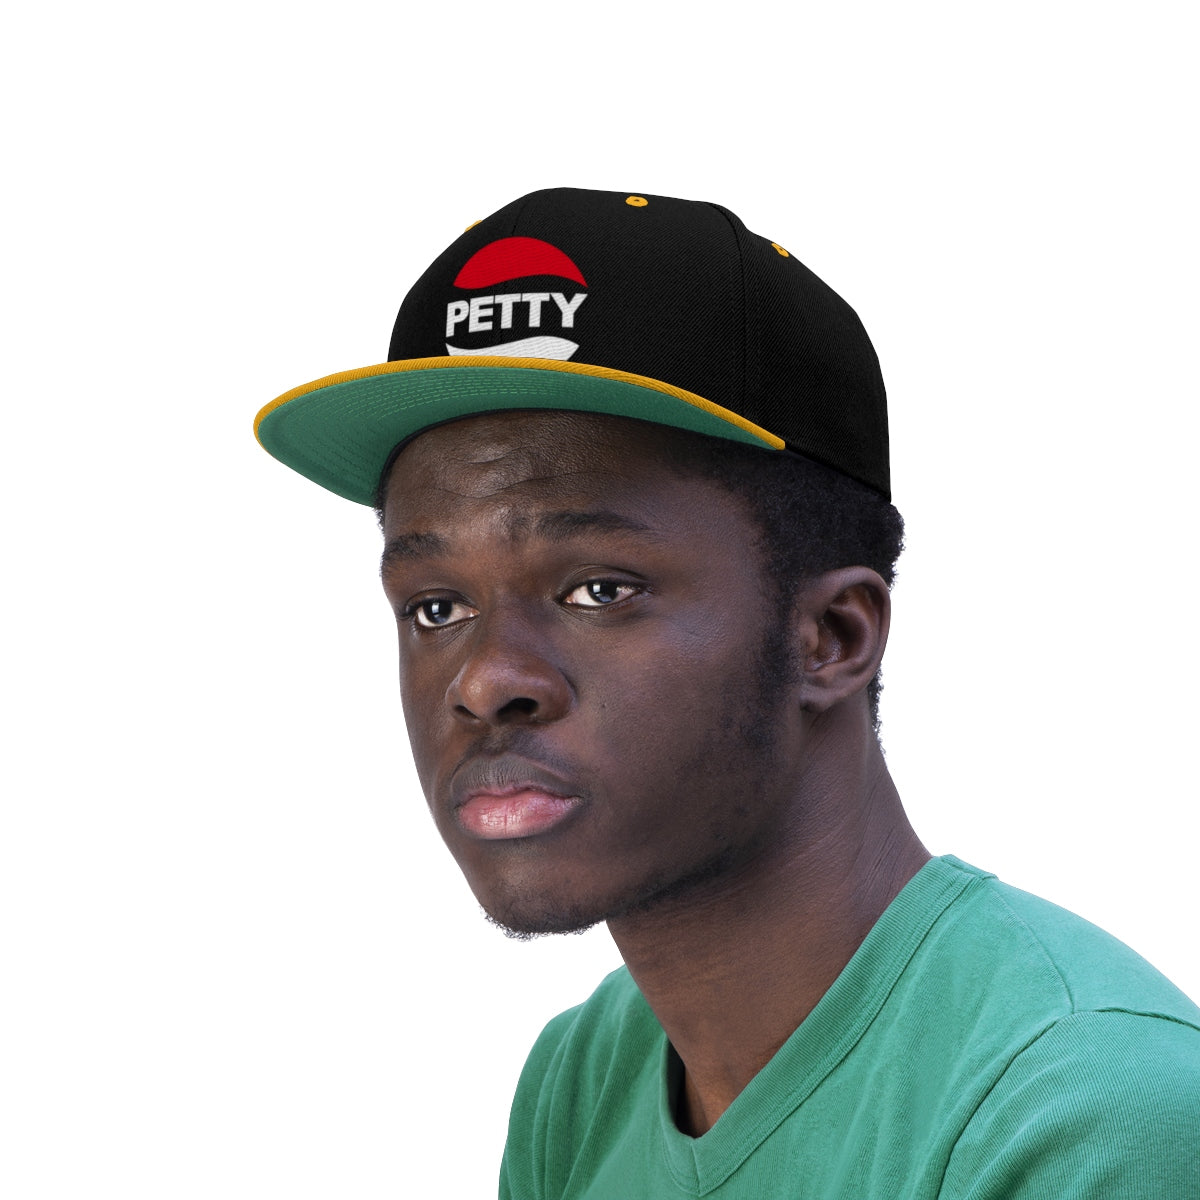 Petty Logo Unisex Flat Bill Hat-Hats-Good Vibrations Clothing Company